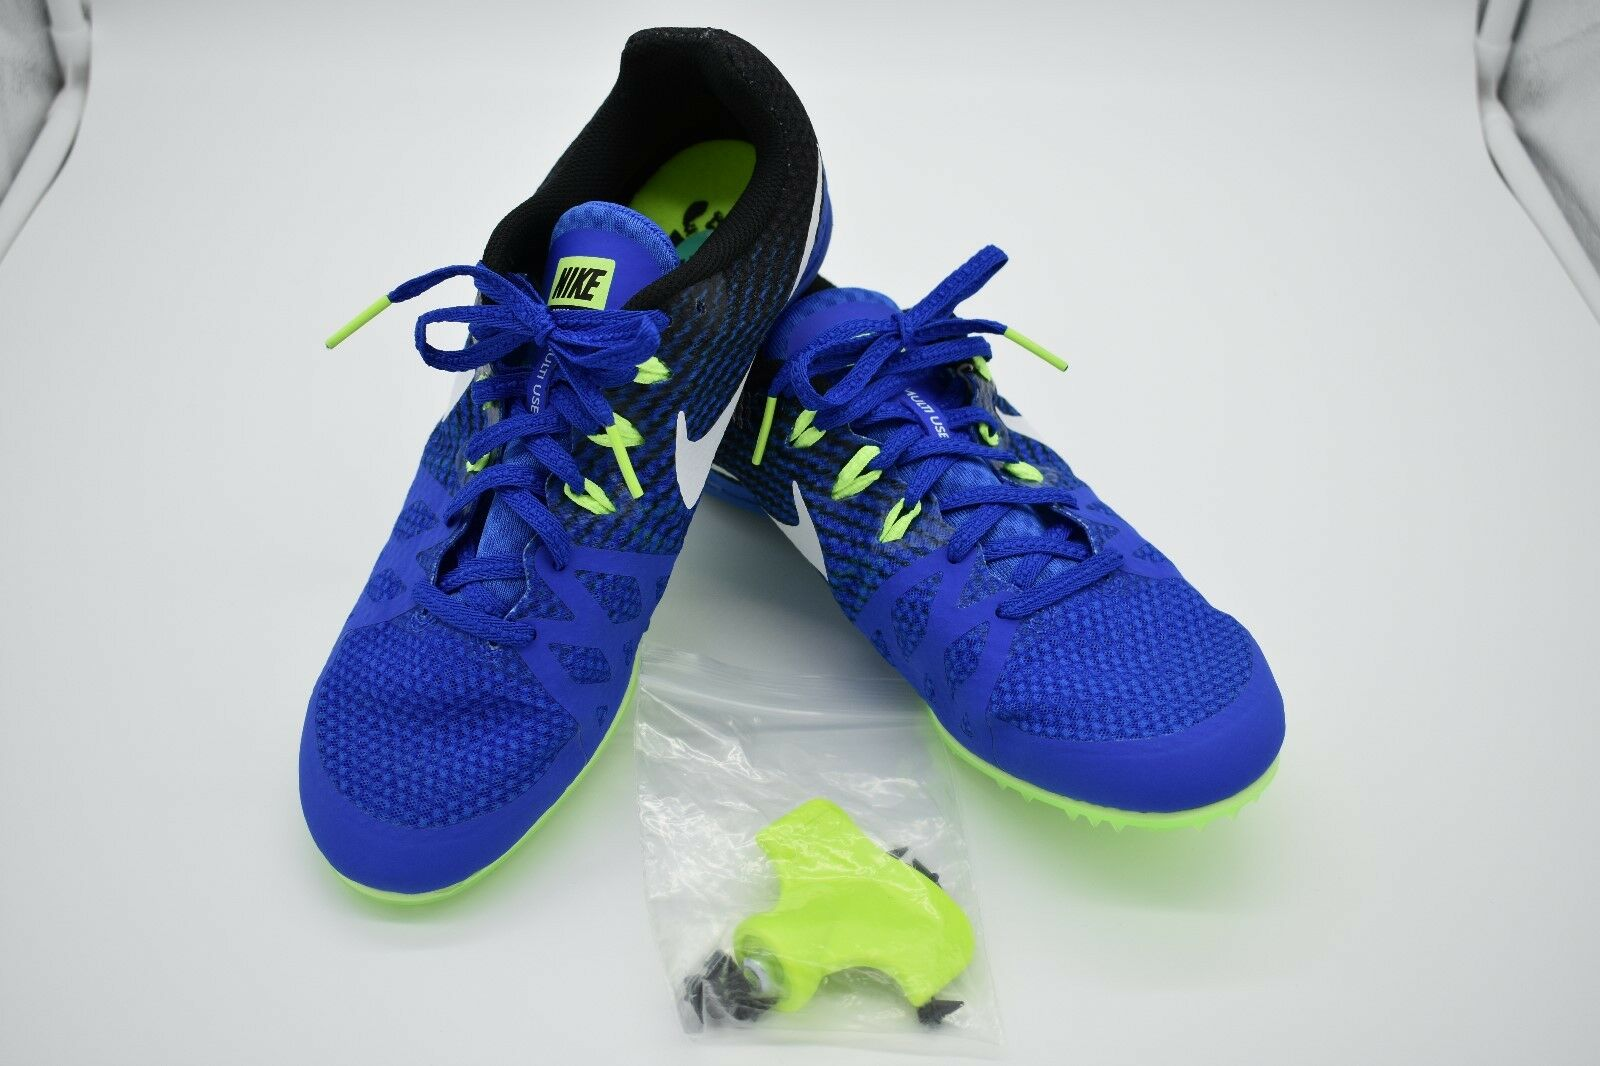 Wild casual shoes Nike Zoom Rival M 8 Track Spikes Unisex 806555-413 Men's Comfortable